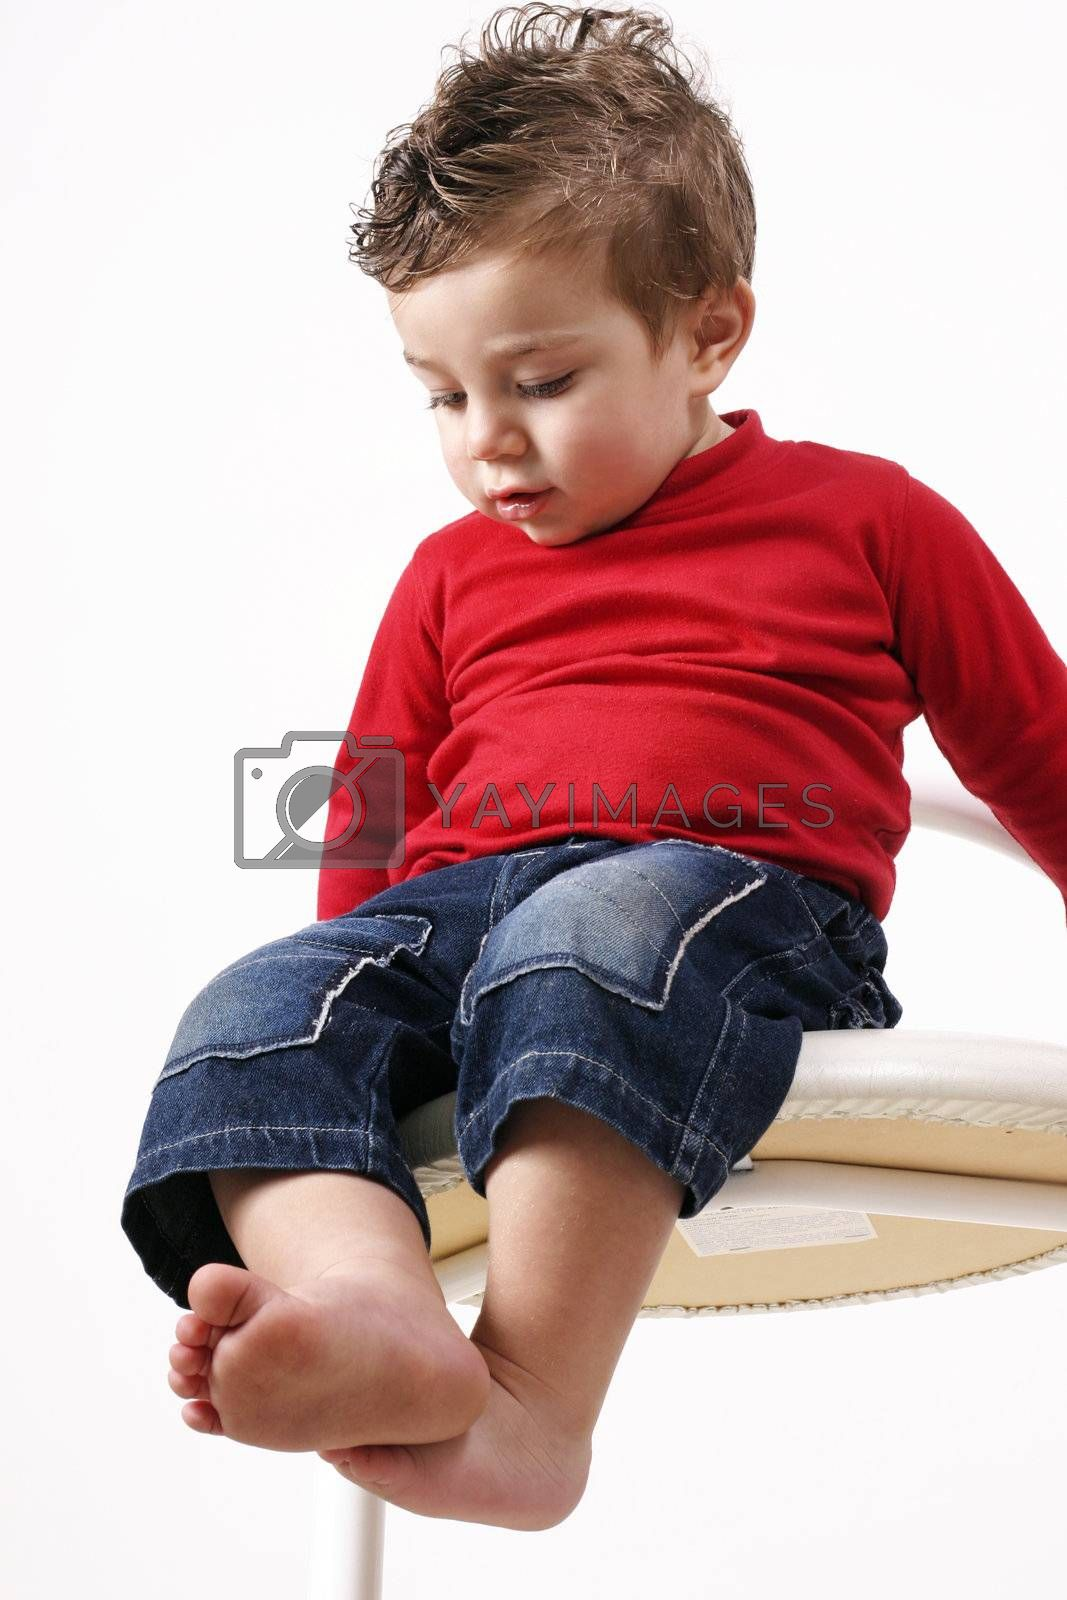 Toddler sitting  on a high stool makes an observation of his surroundings